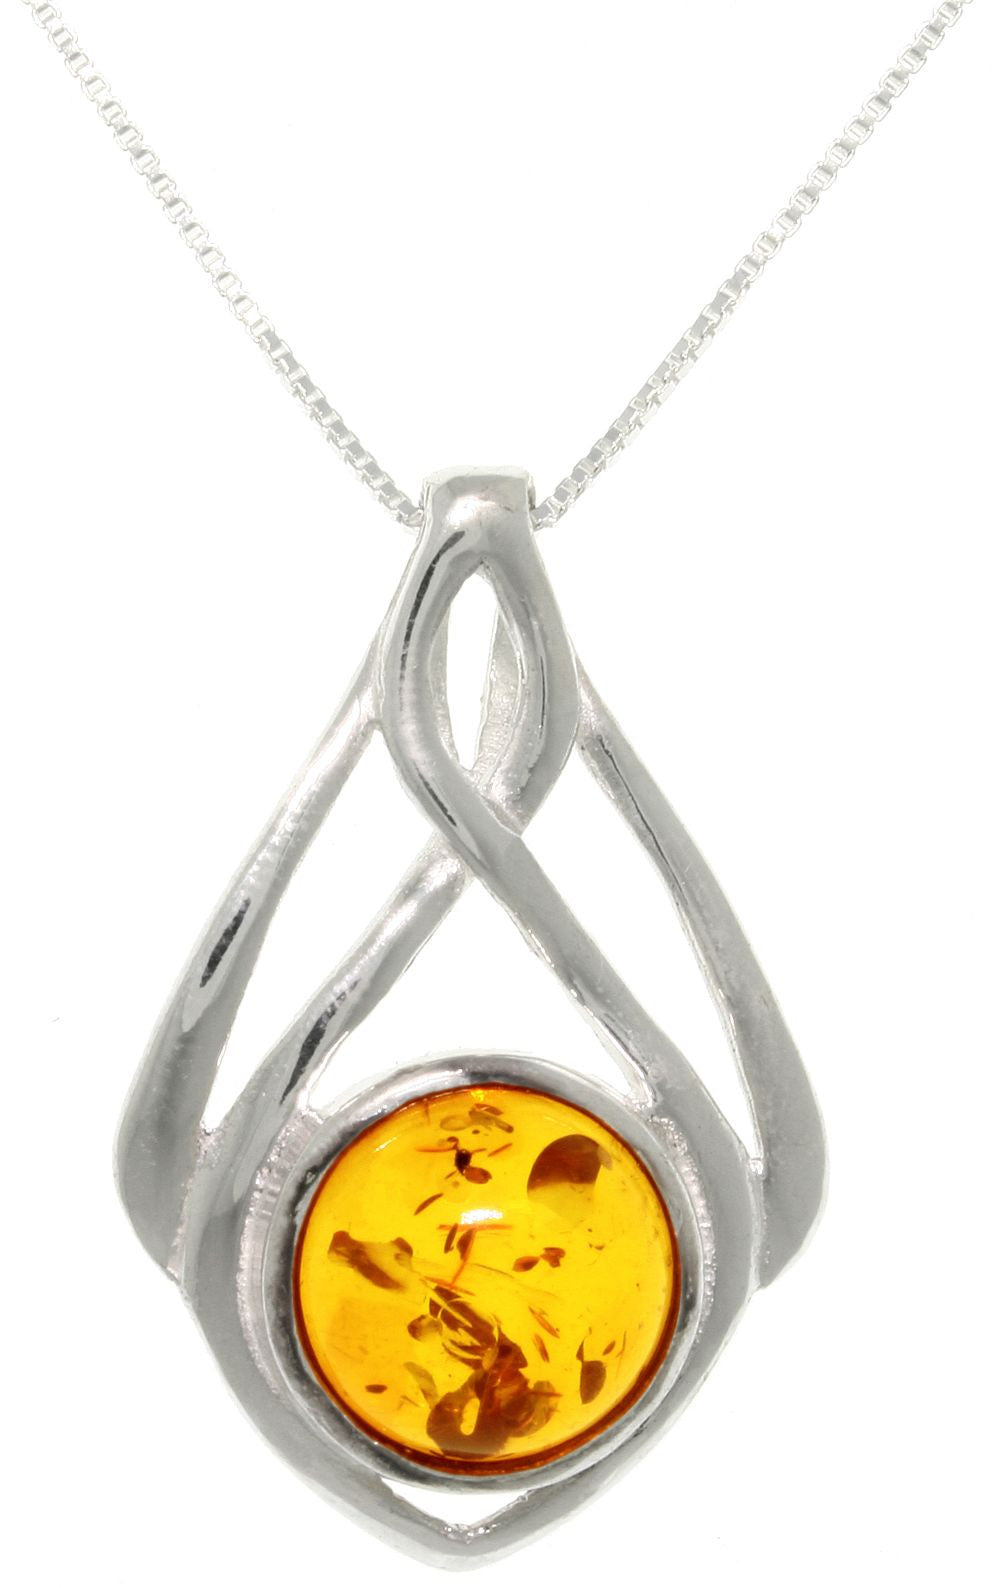 Necklace Sterling Silver /& Baltic Amber Pendant With Silver Box Chain